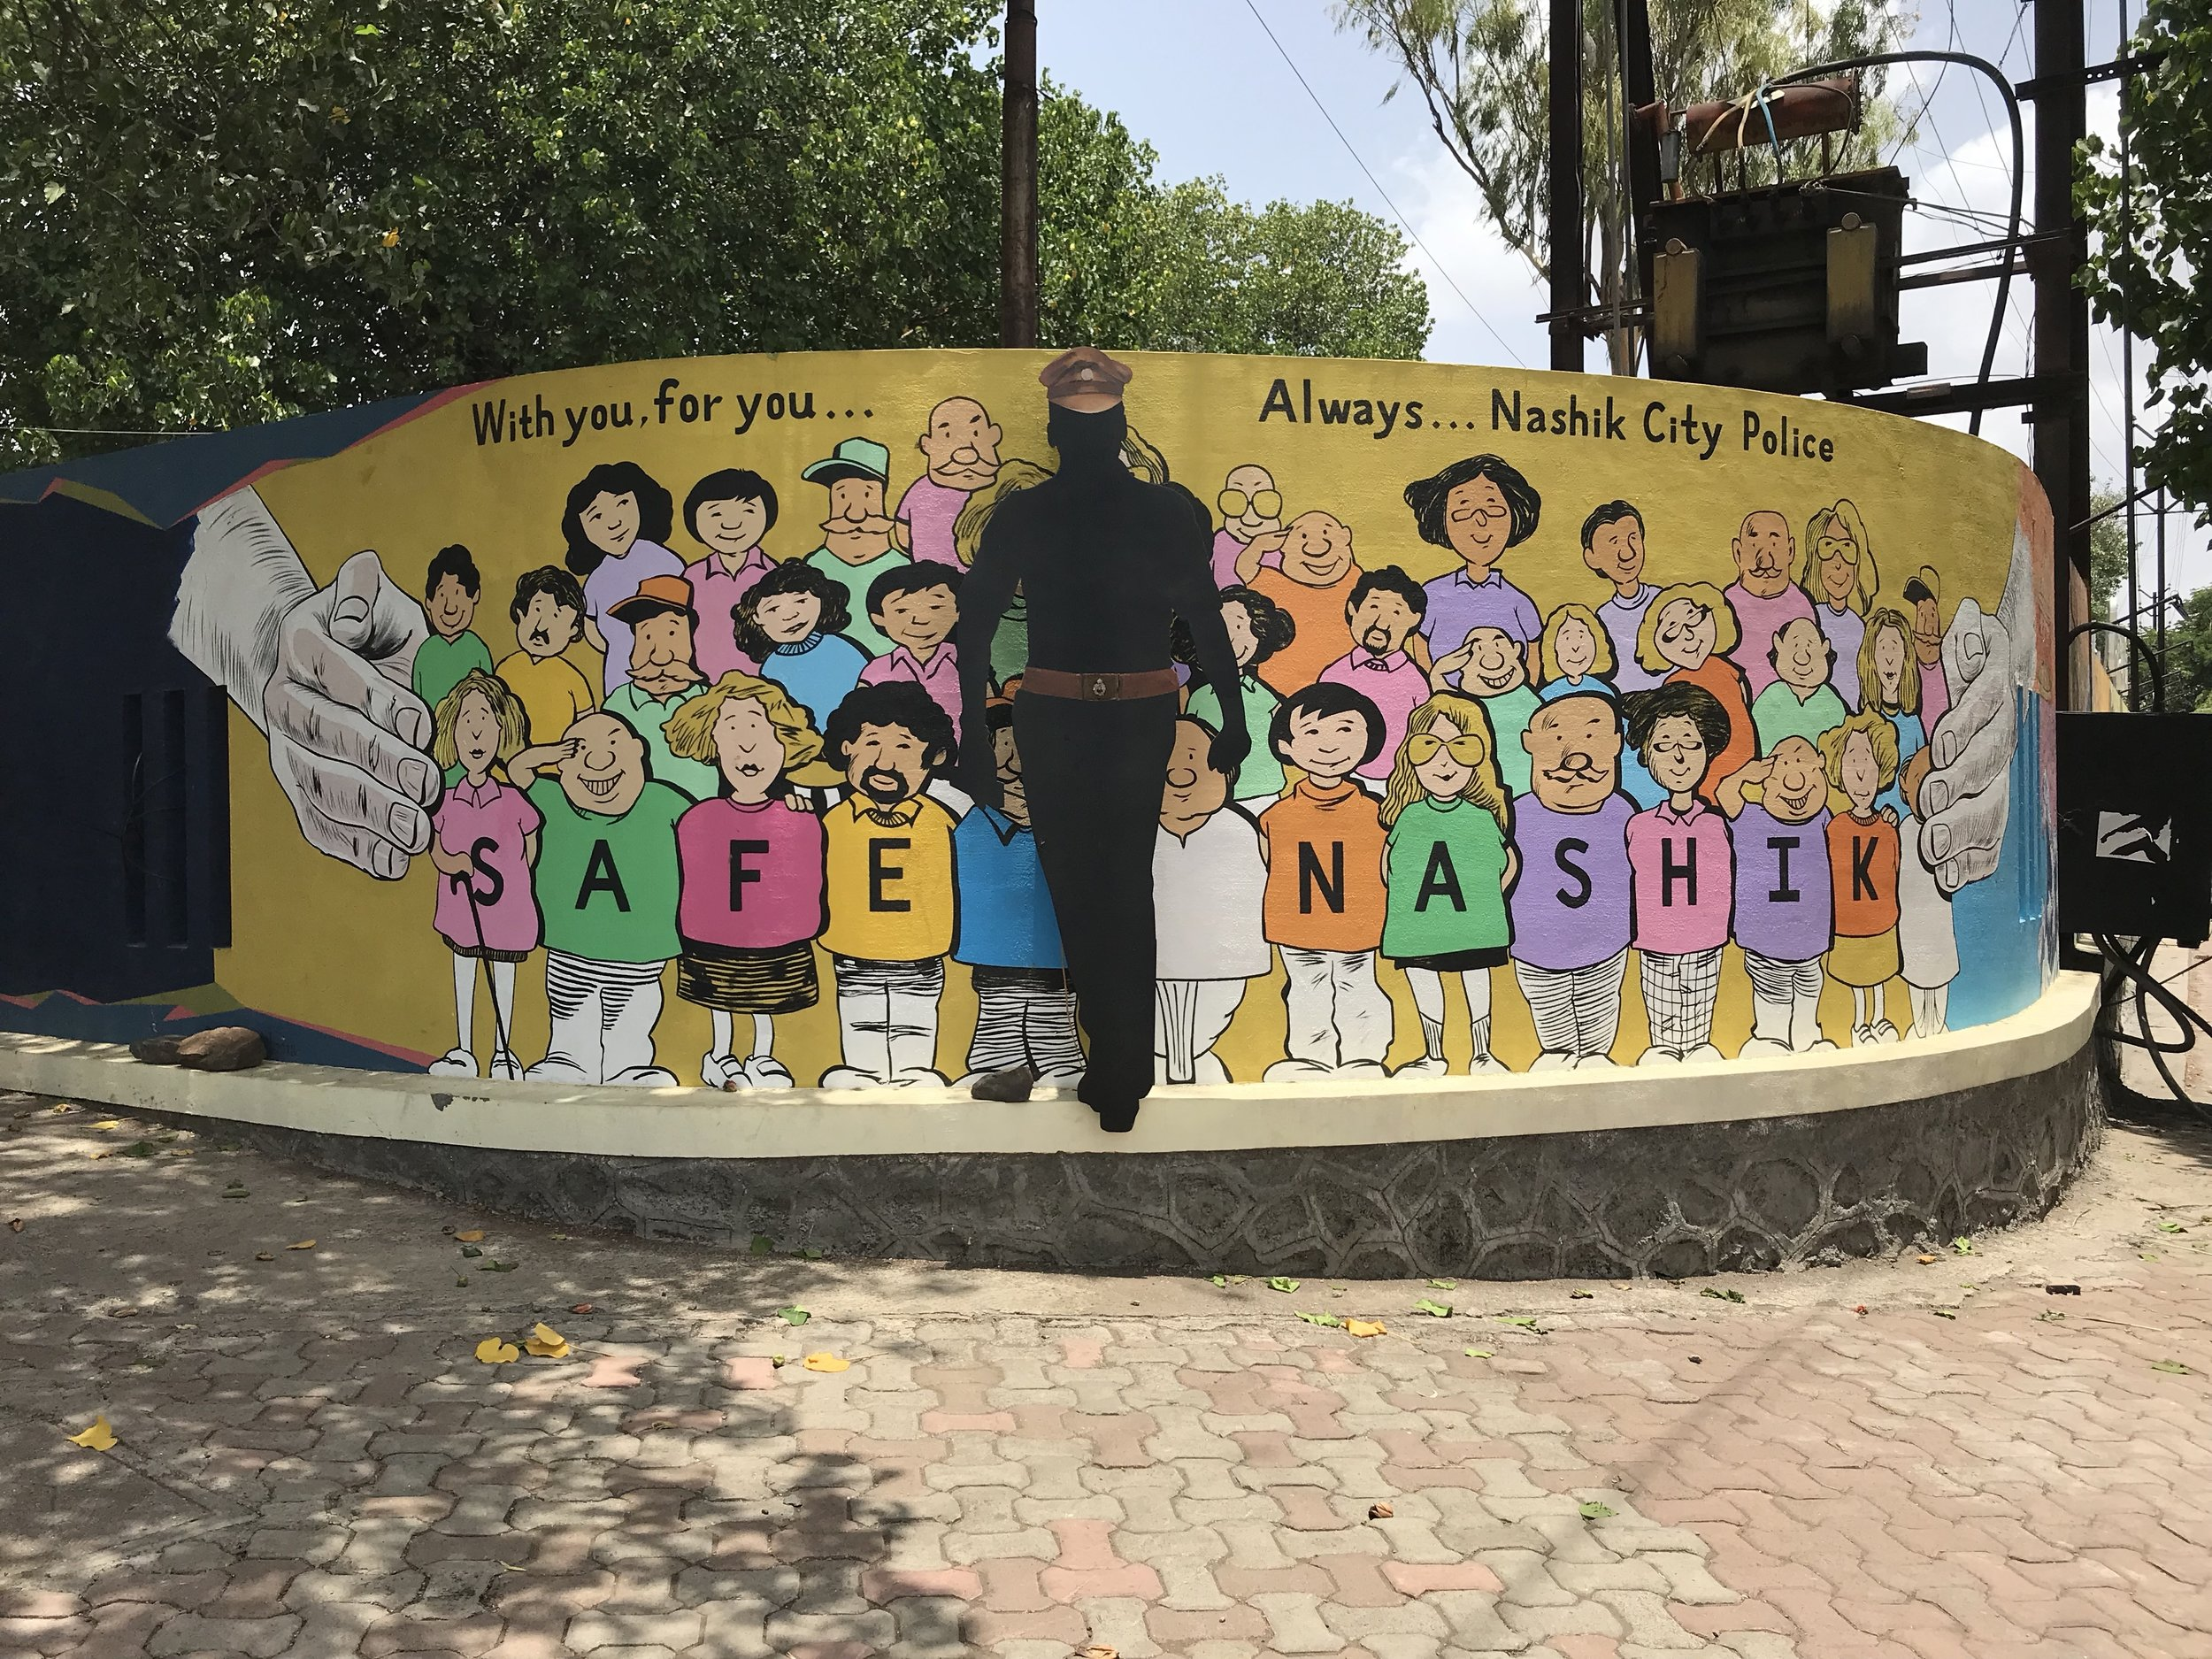 Nashik Police wall mural promoting the Smart Safe City. Photo: Ayona Datta